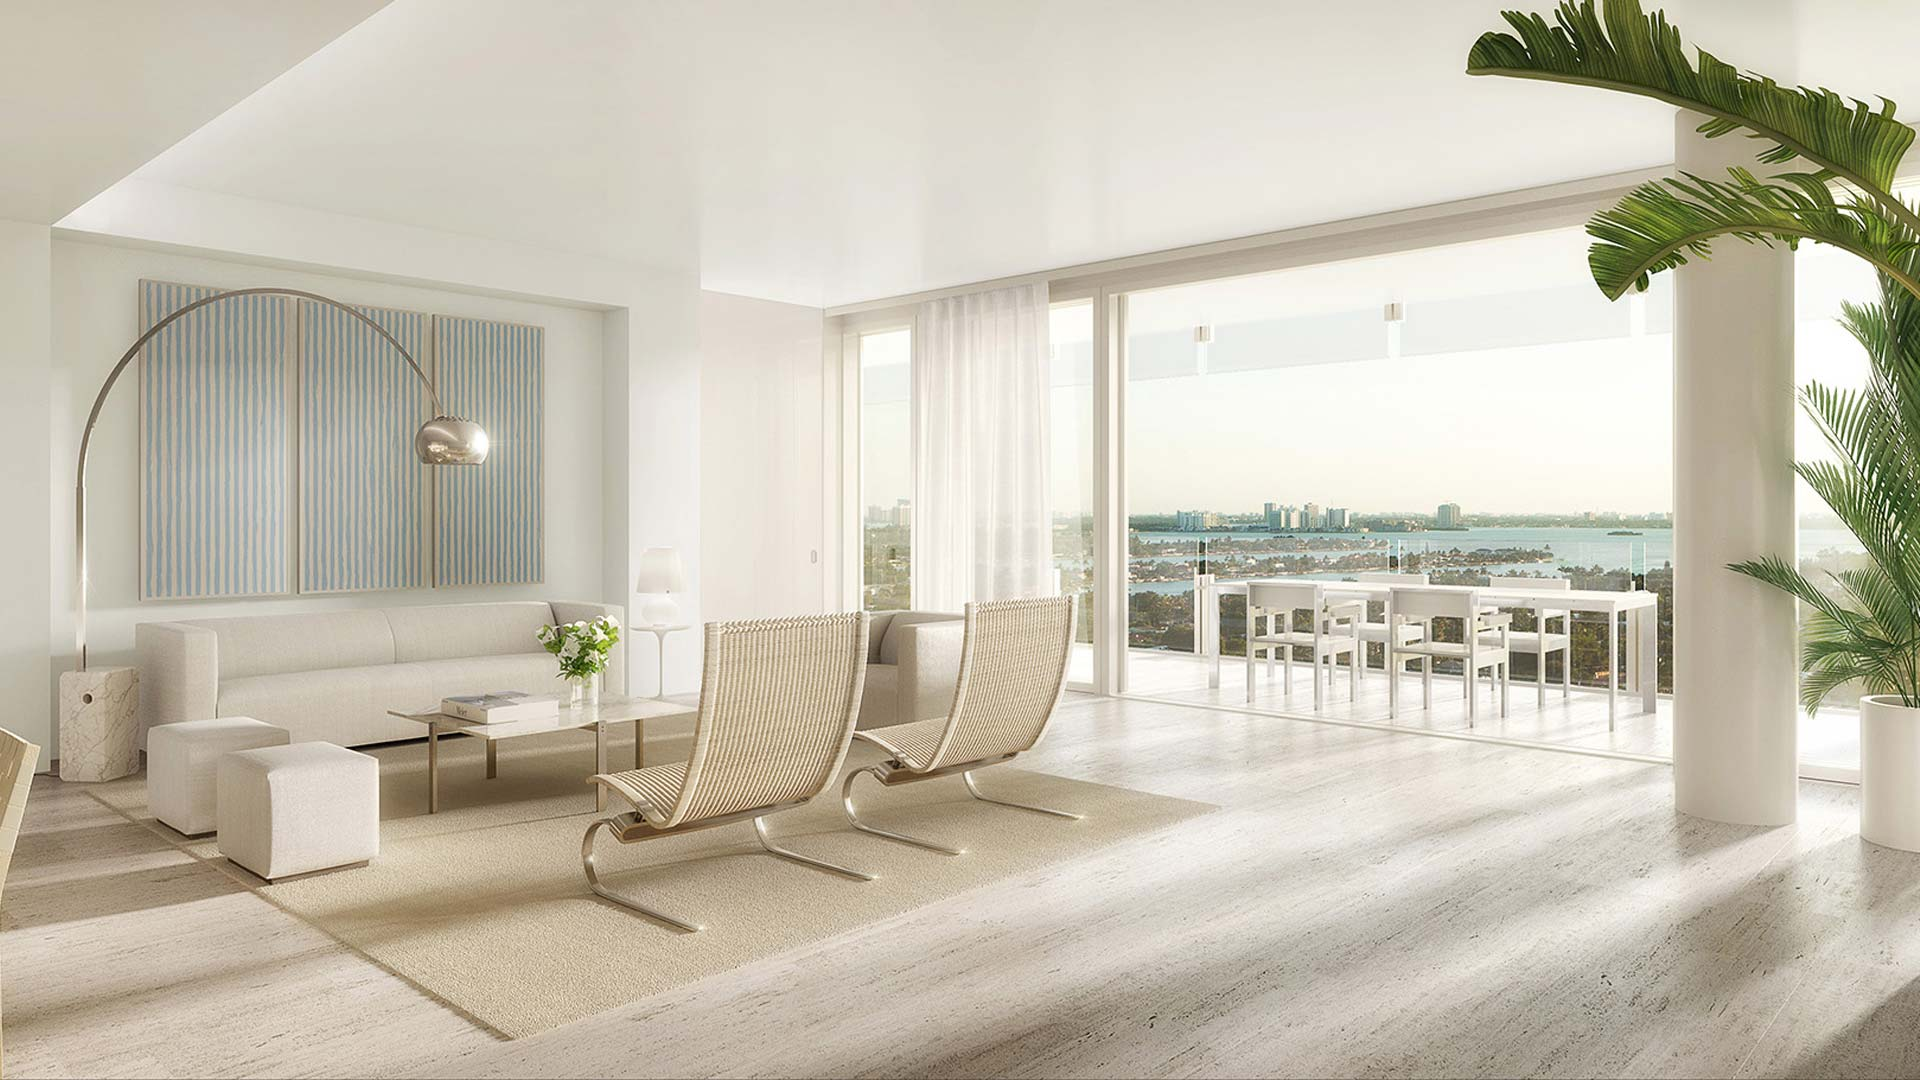 The Surf Club Four Seasons Residences Surfside New Construction